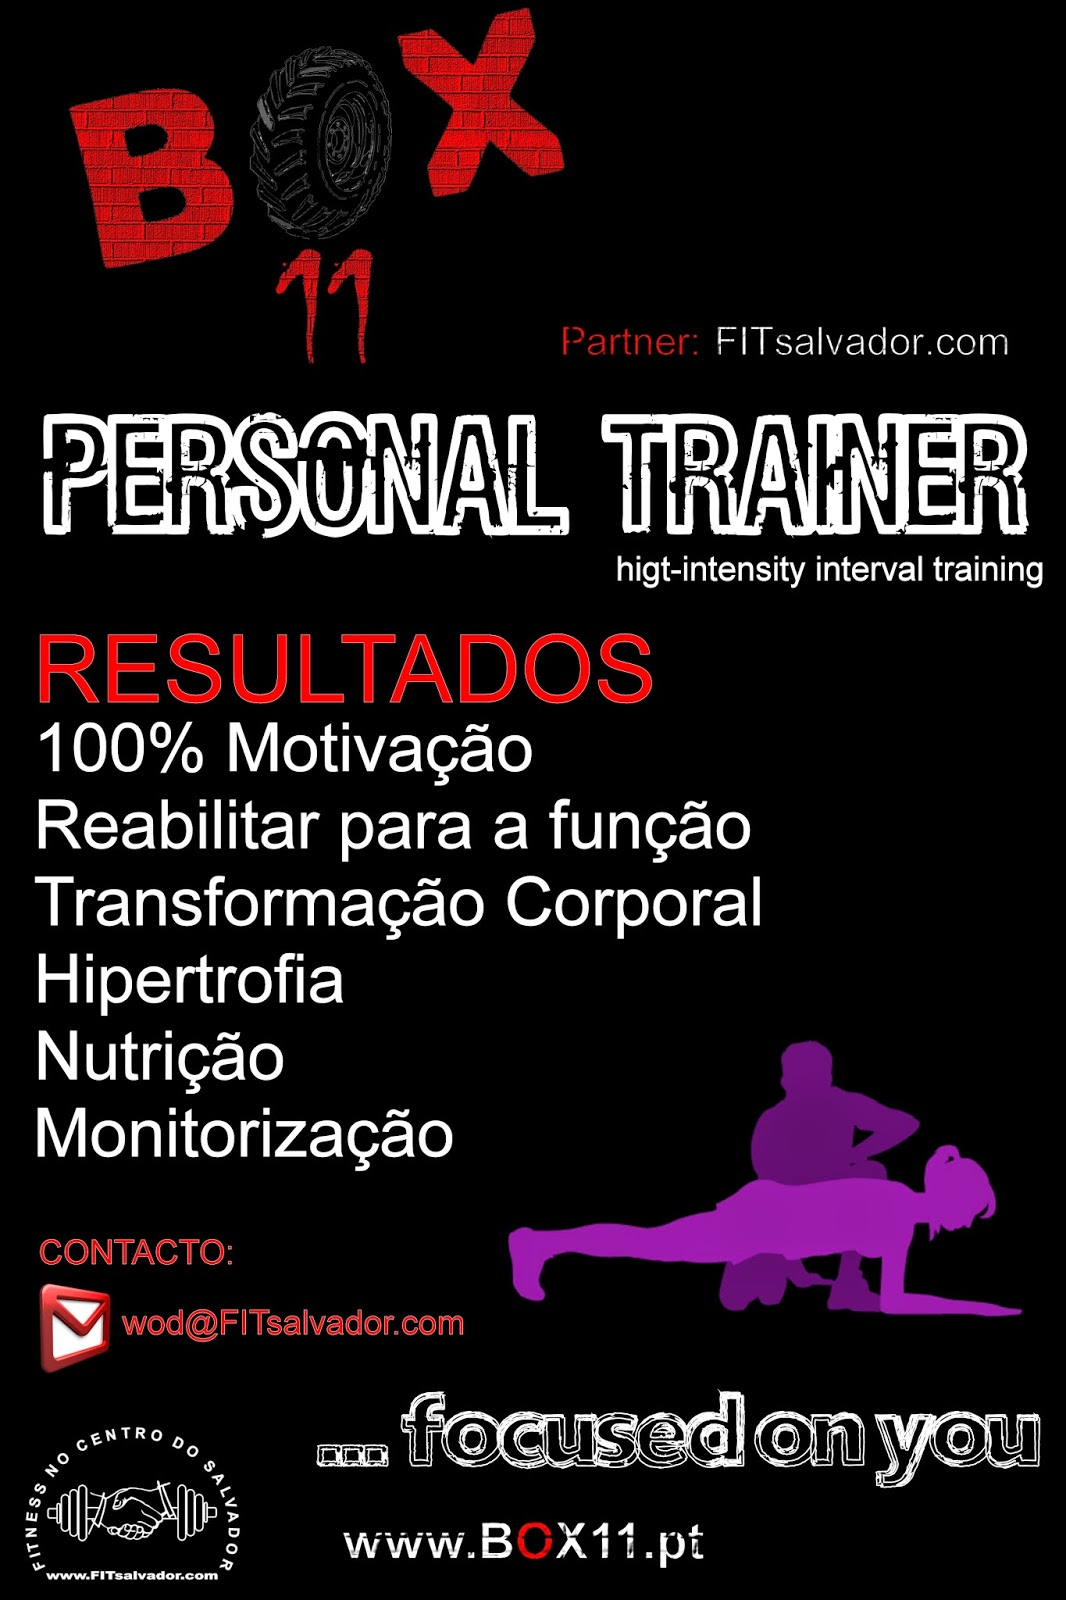 http://www.box11.pt/p/personal-trainer-11.html